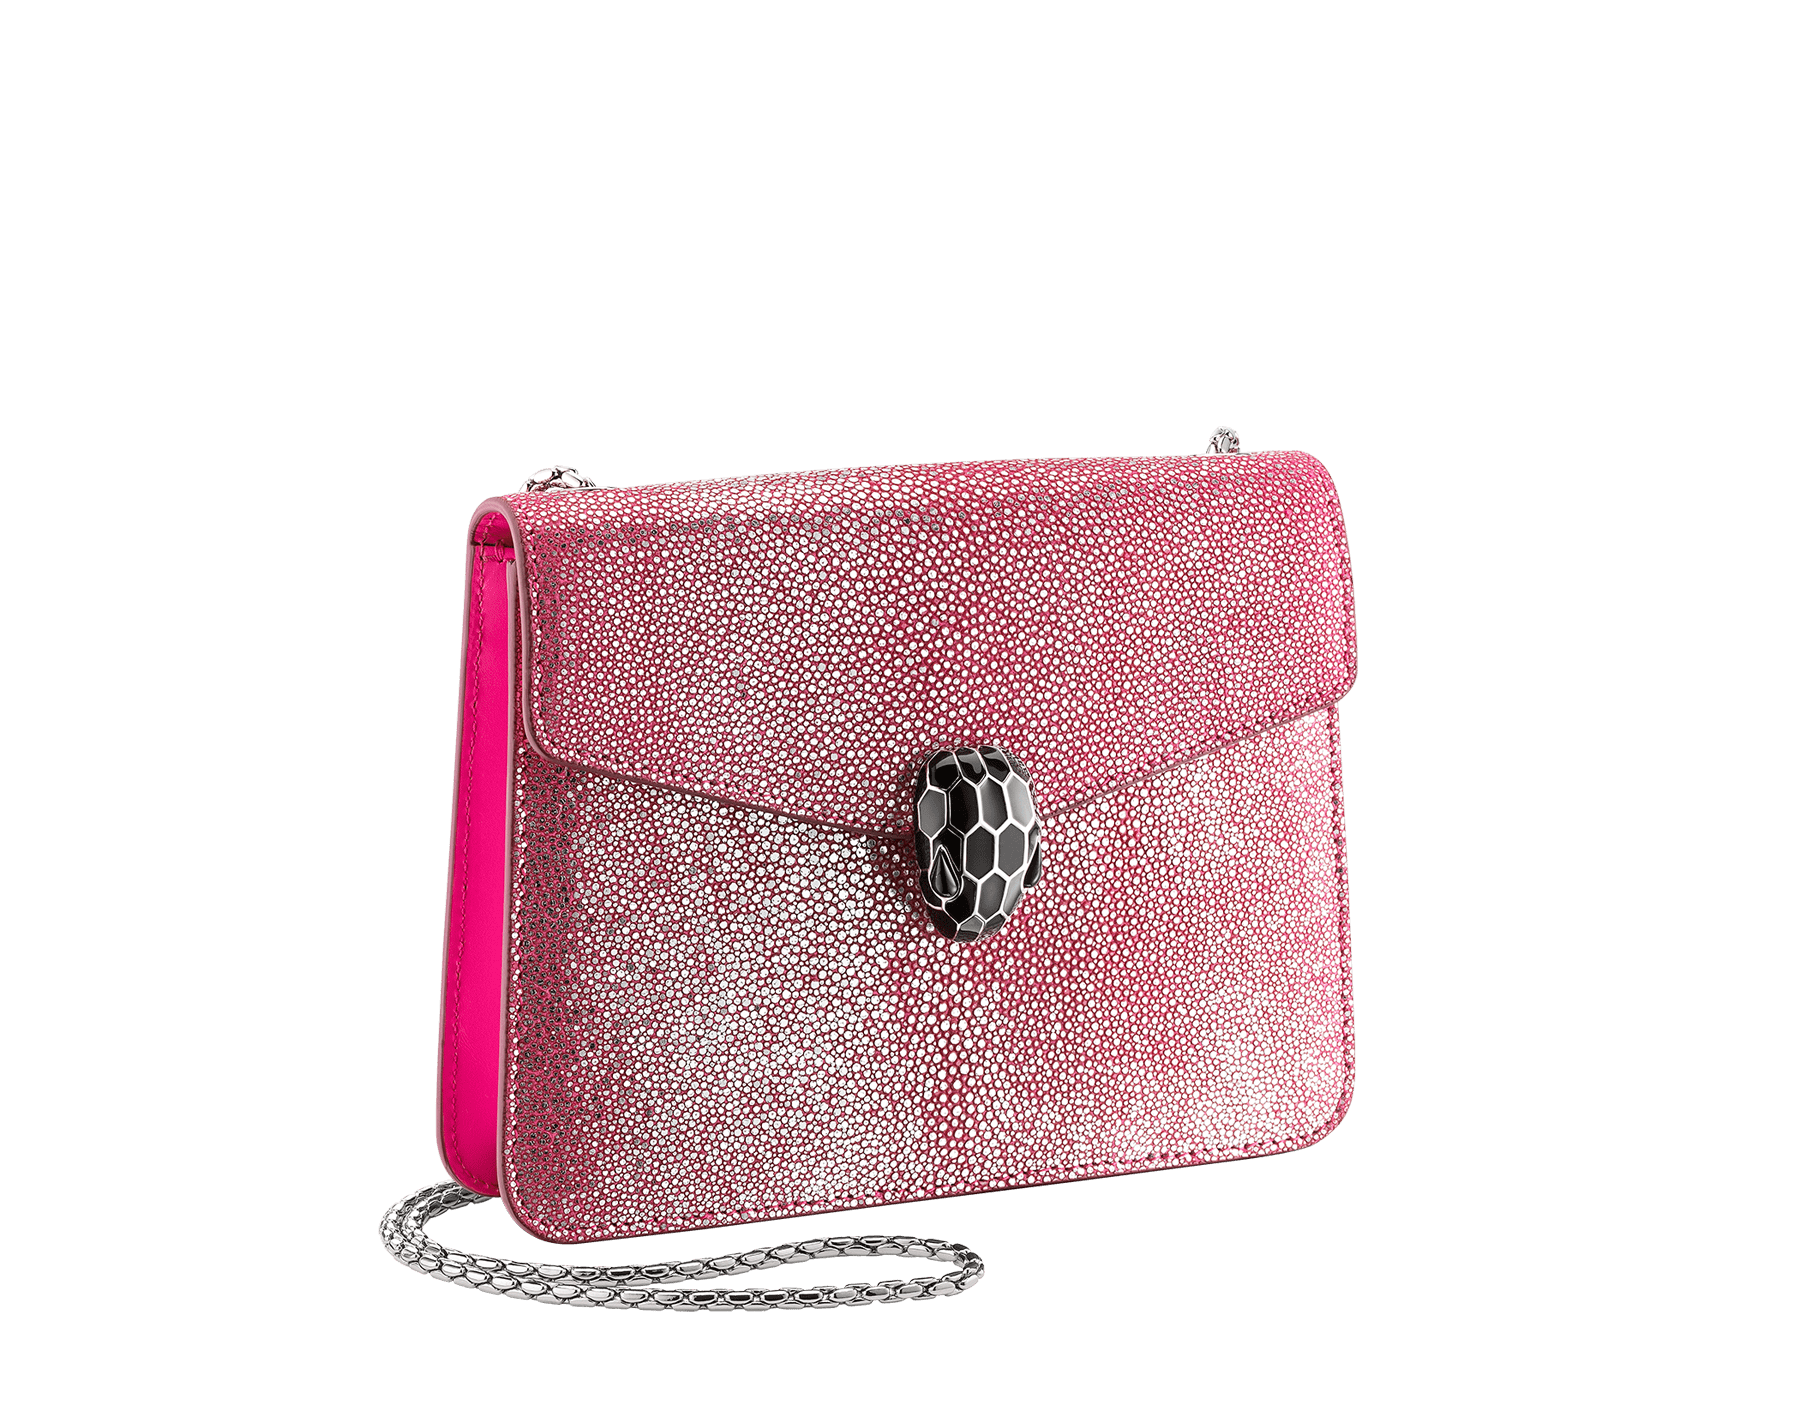 """""""Serpenti Forever"""" crossbody bag in flash amethyst crystal galuchat skin. Iconic snake head closure in palladium plated brass enriched with black enamel and black onyx eyes. 288996 image 2"""